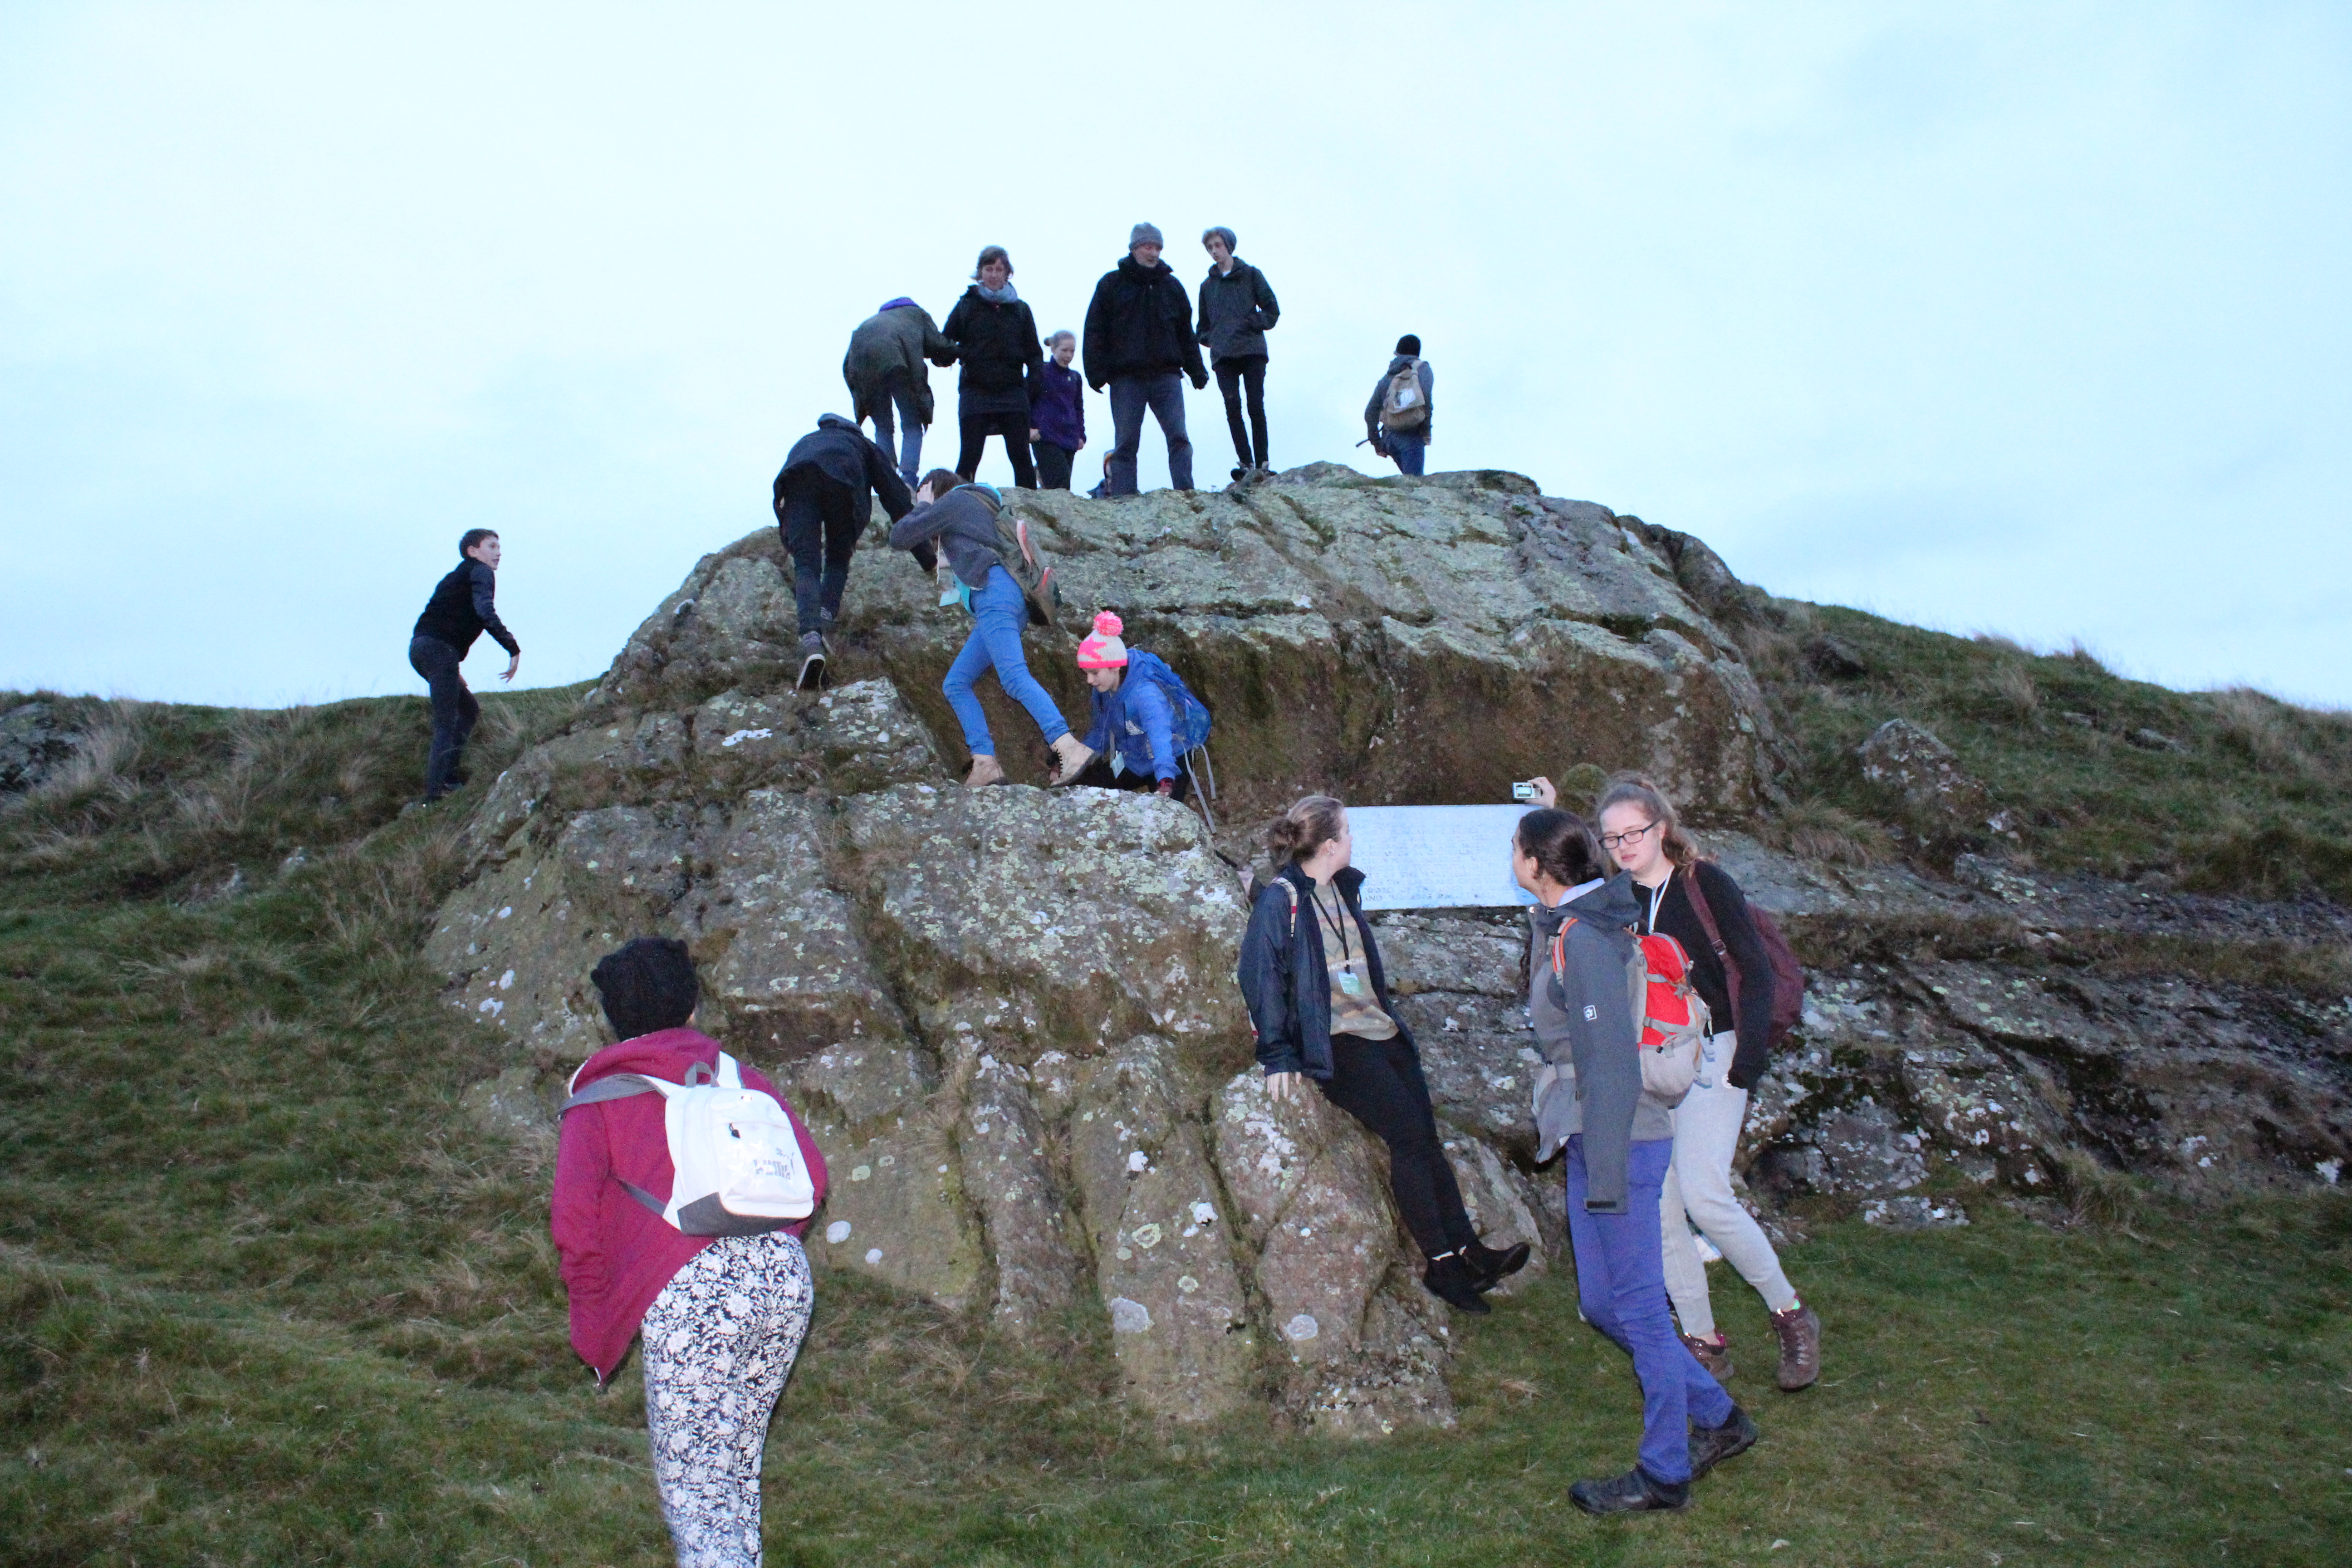 Young Quakers visit Pendle Hill